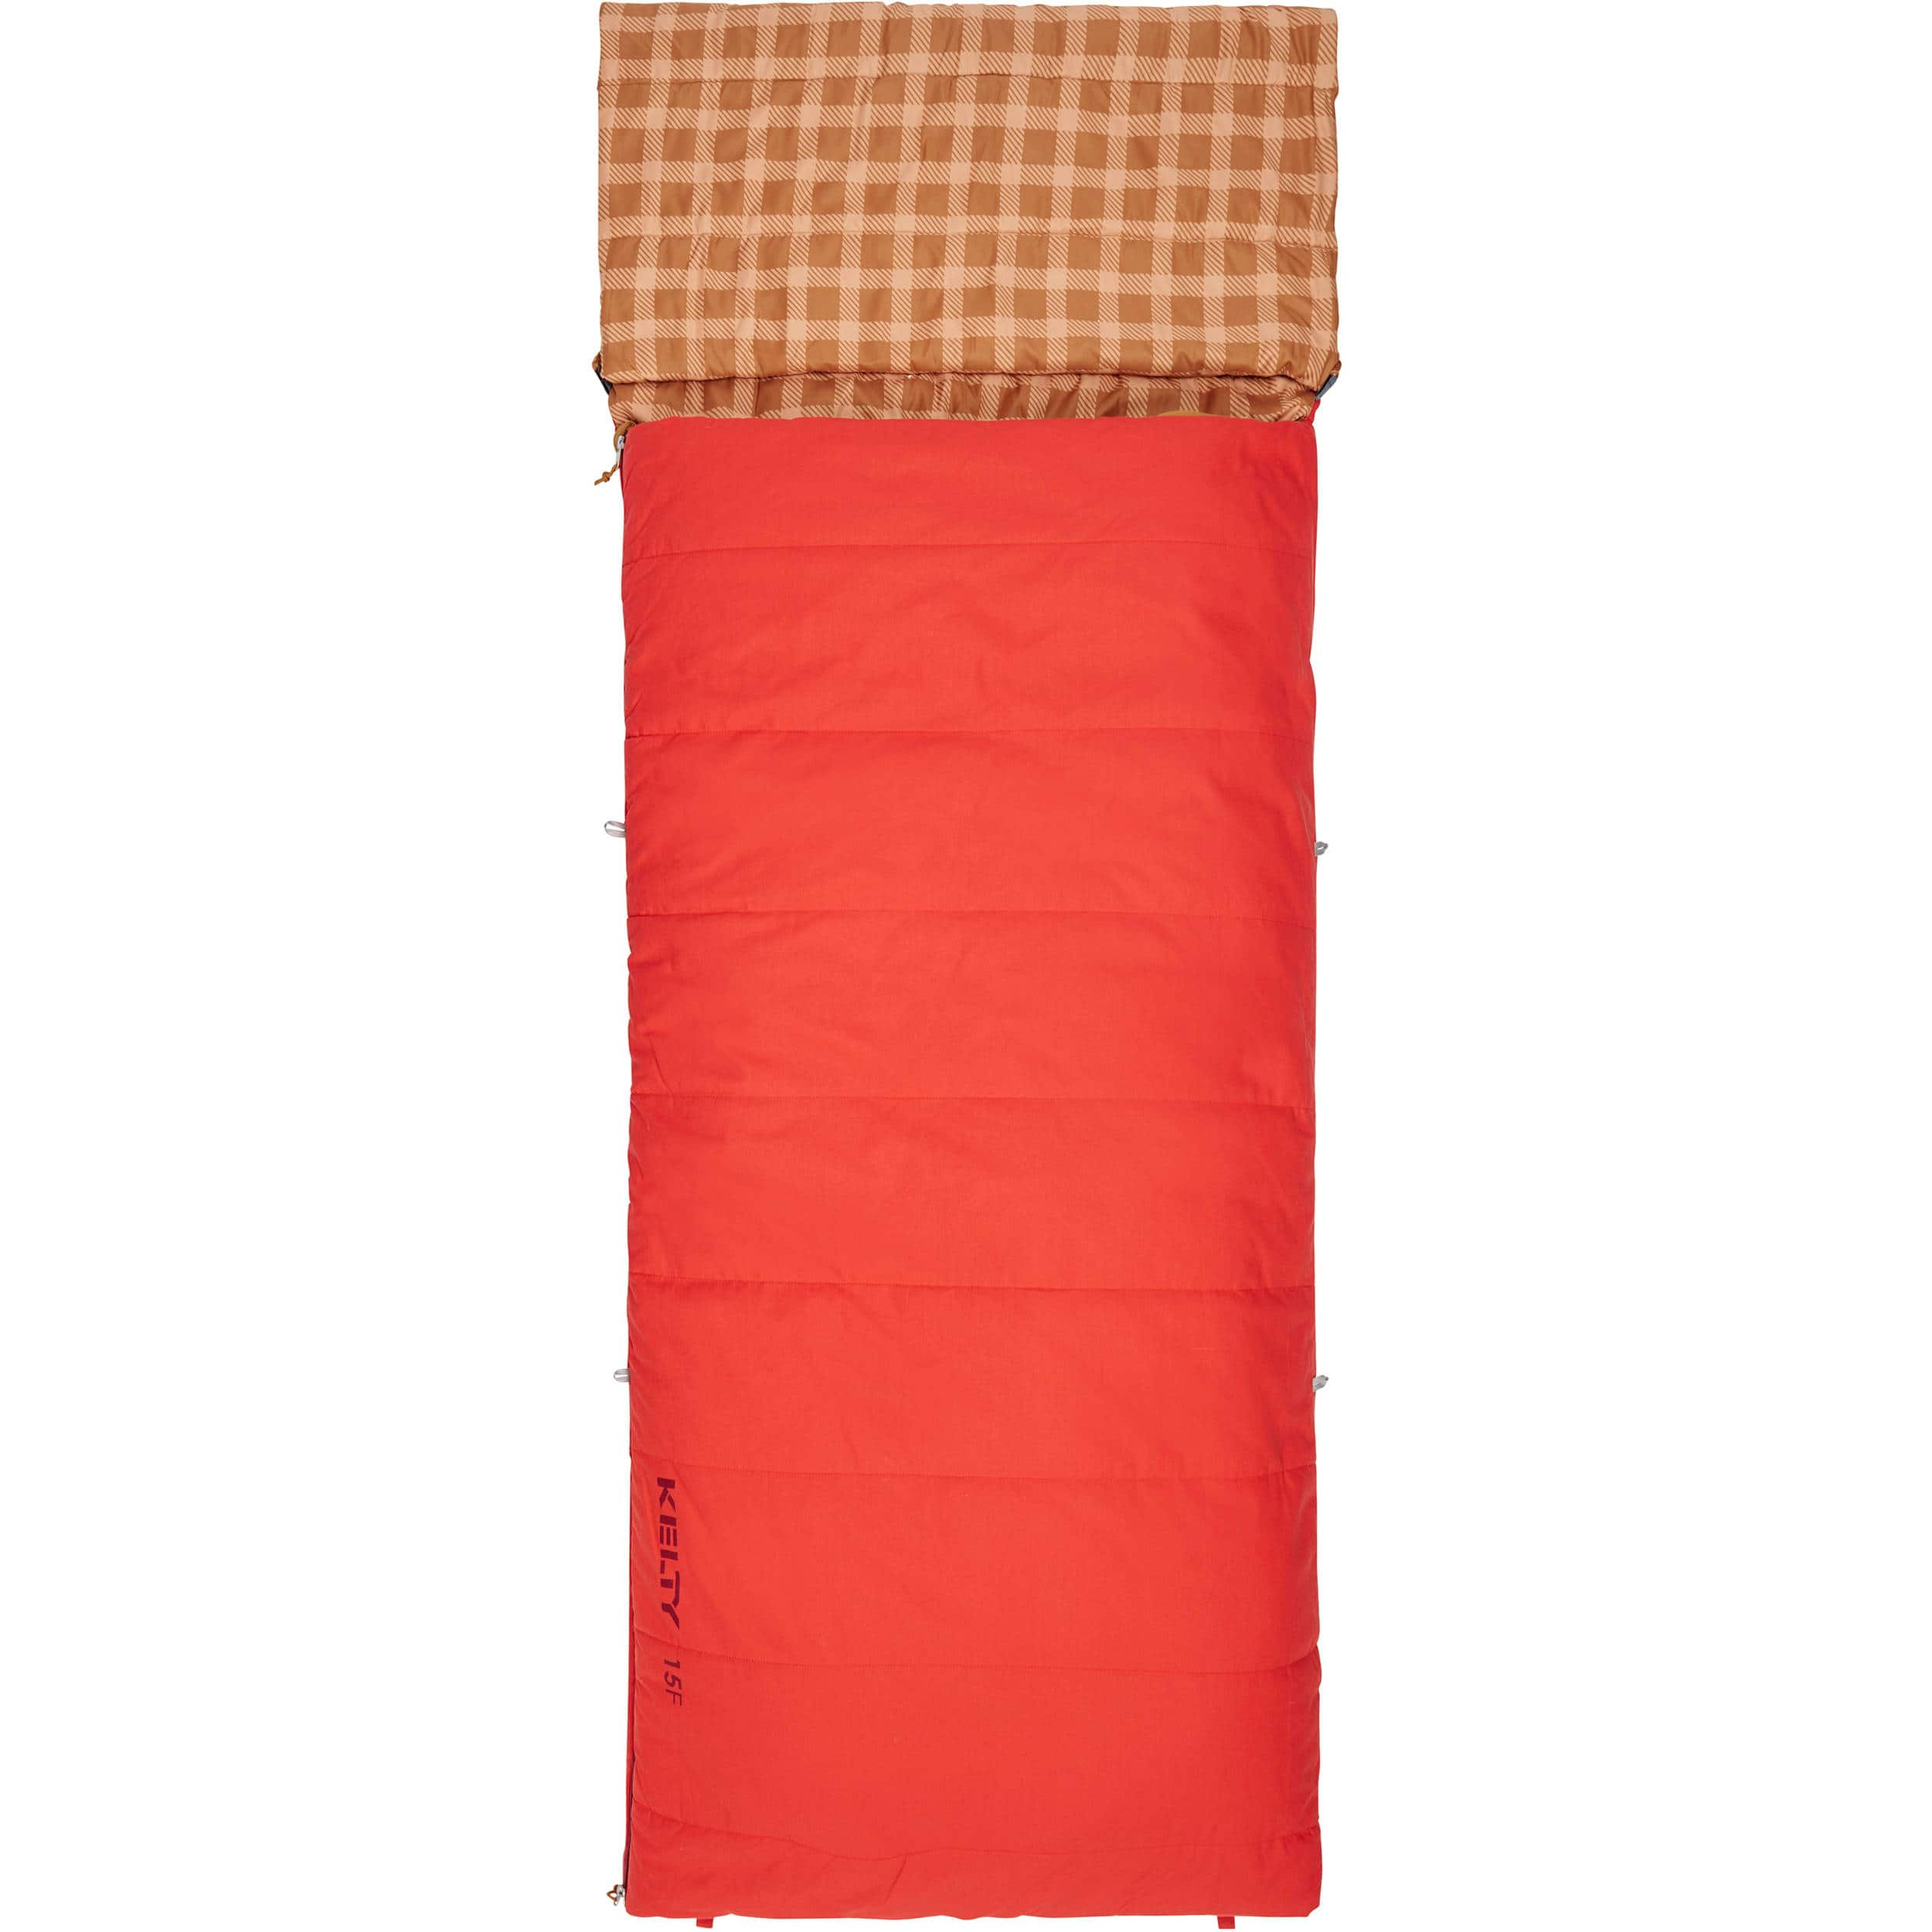 Kelty Revival 15 Degree Sleeping Bag $40 with free shipping.  60% off $100